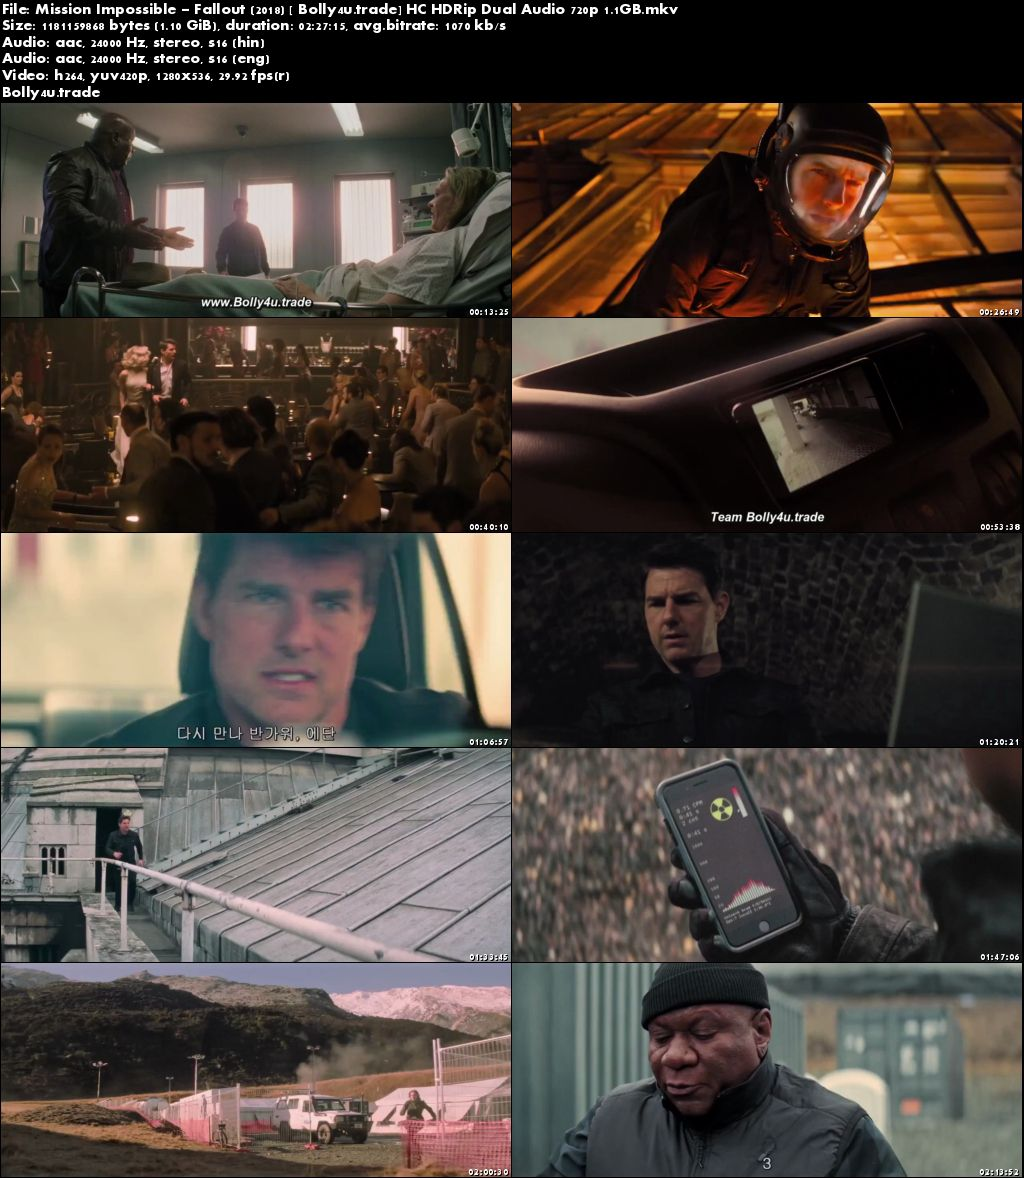 Mission Impossible Fallout 2018 HC HDRip 450MB Hindi Dual Audio 480p Download